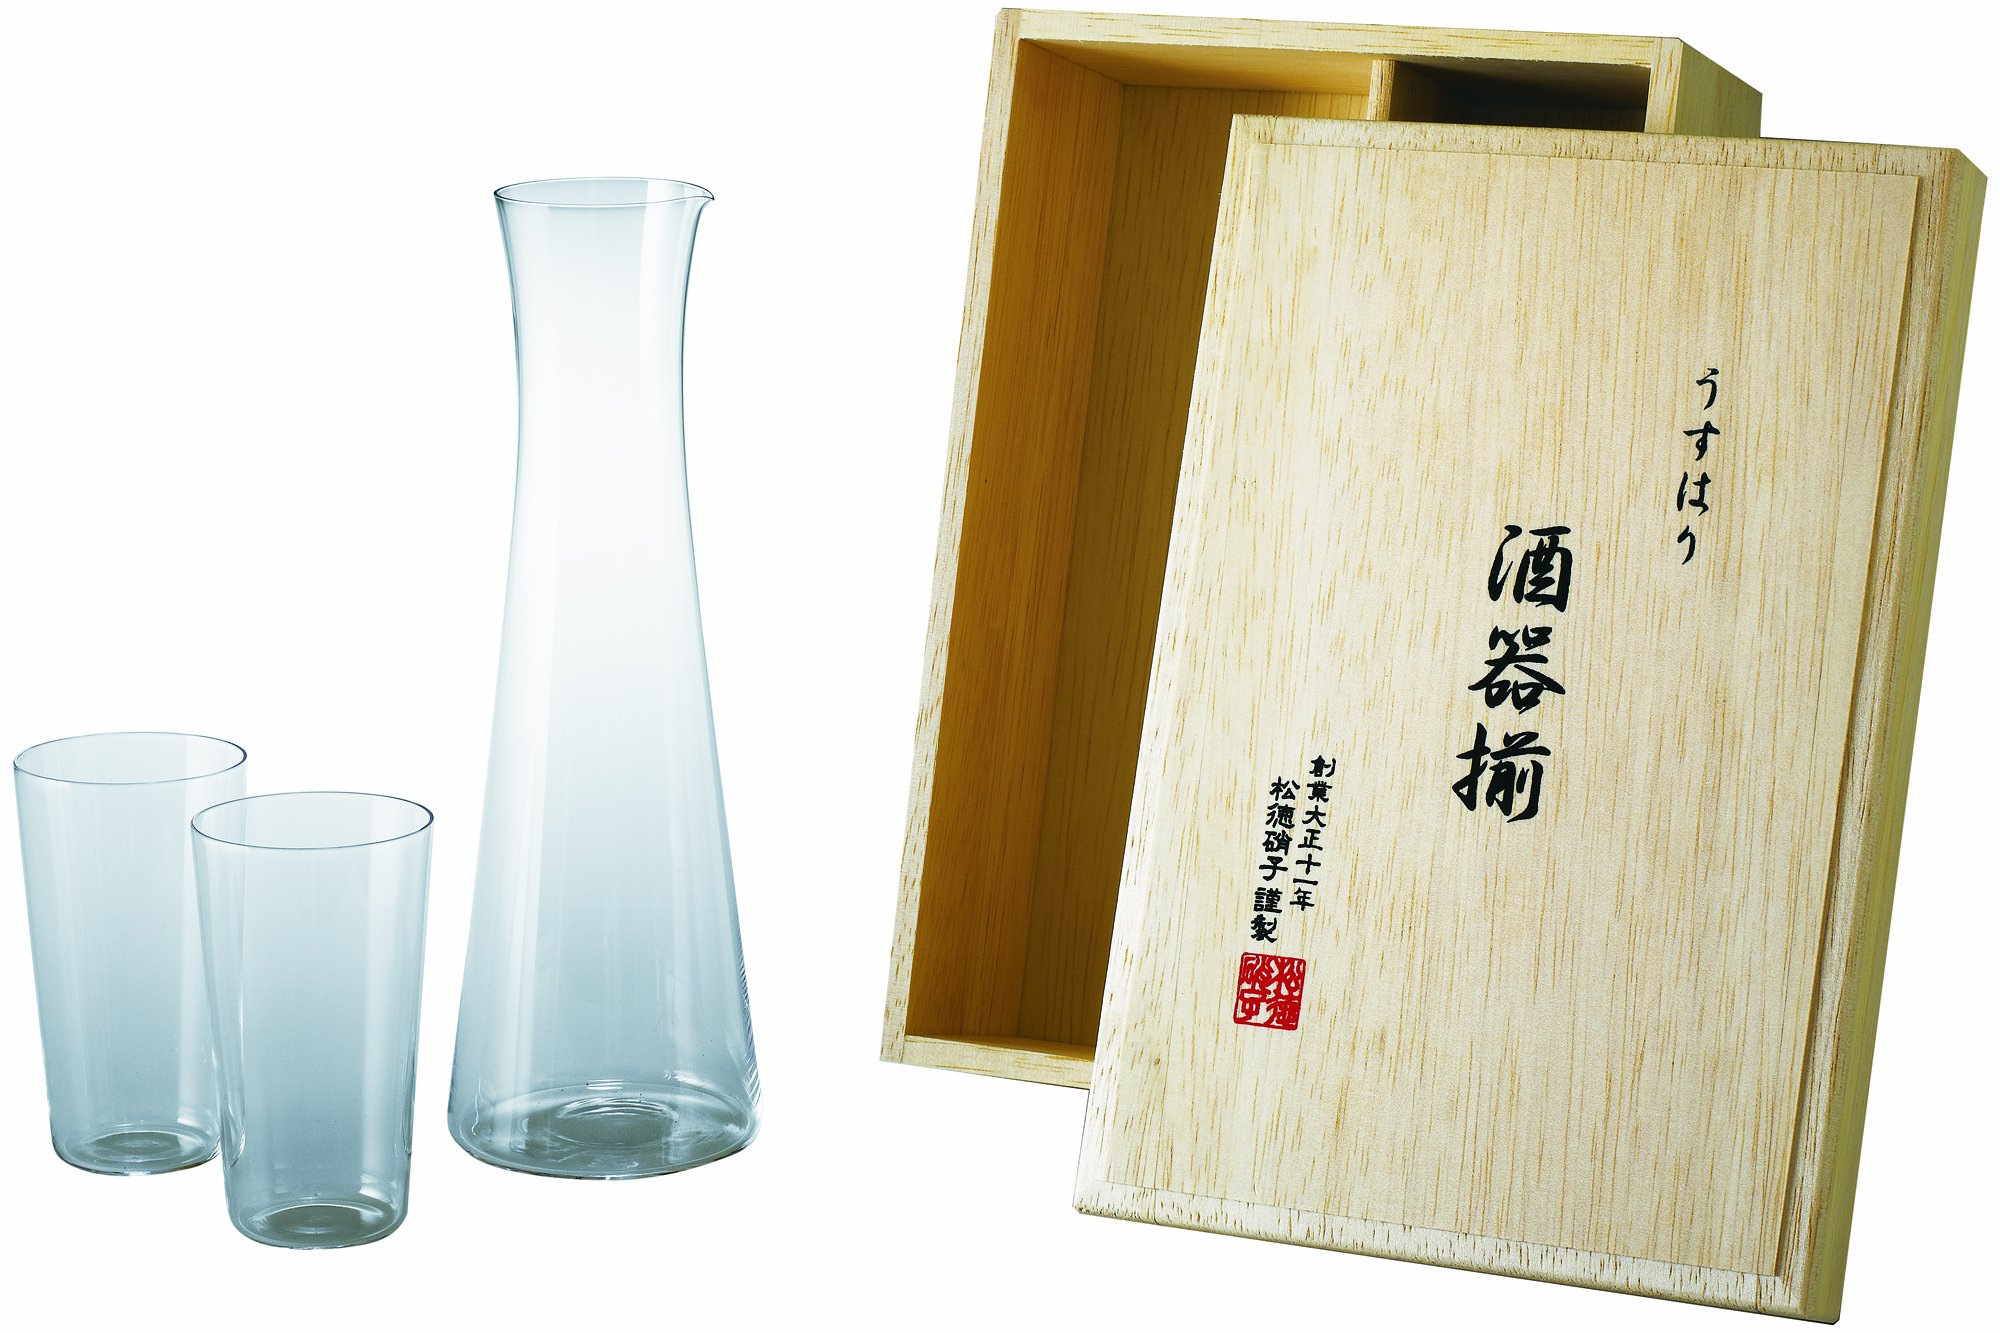 Sake aligned wooden box swell mortar (japan import) by Shotoku Glass (Image #1)